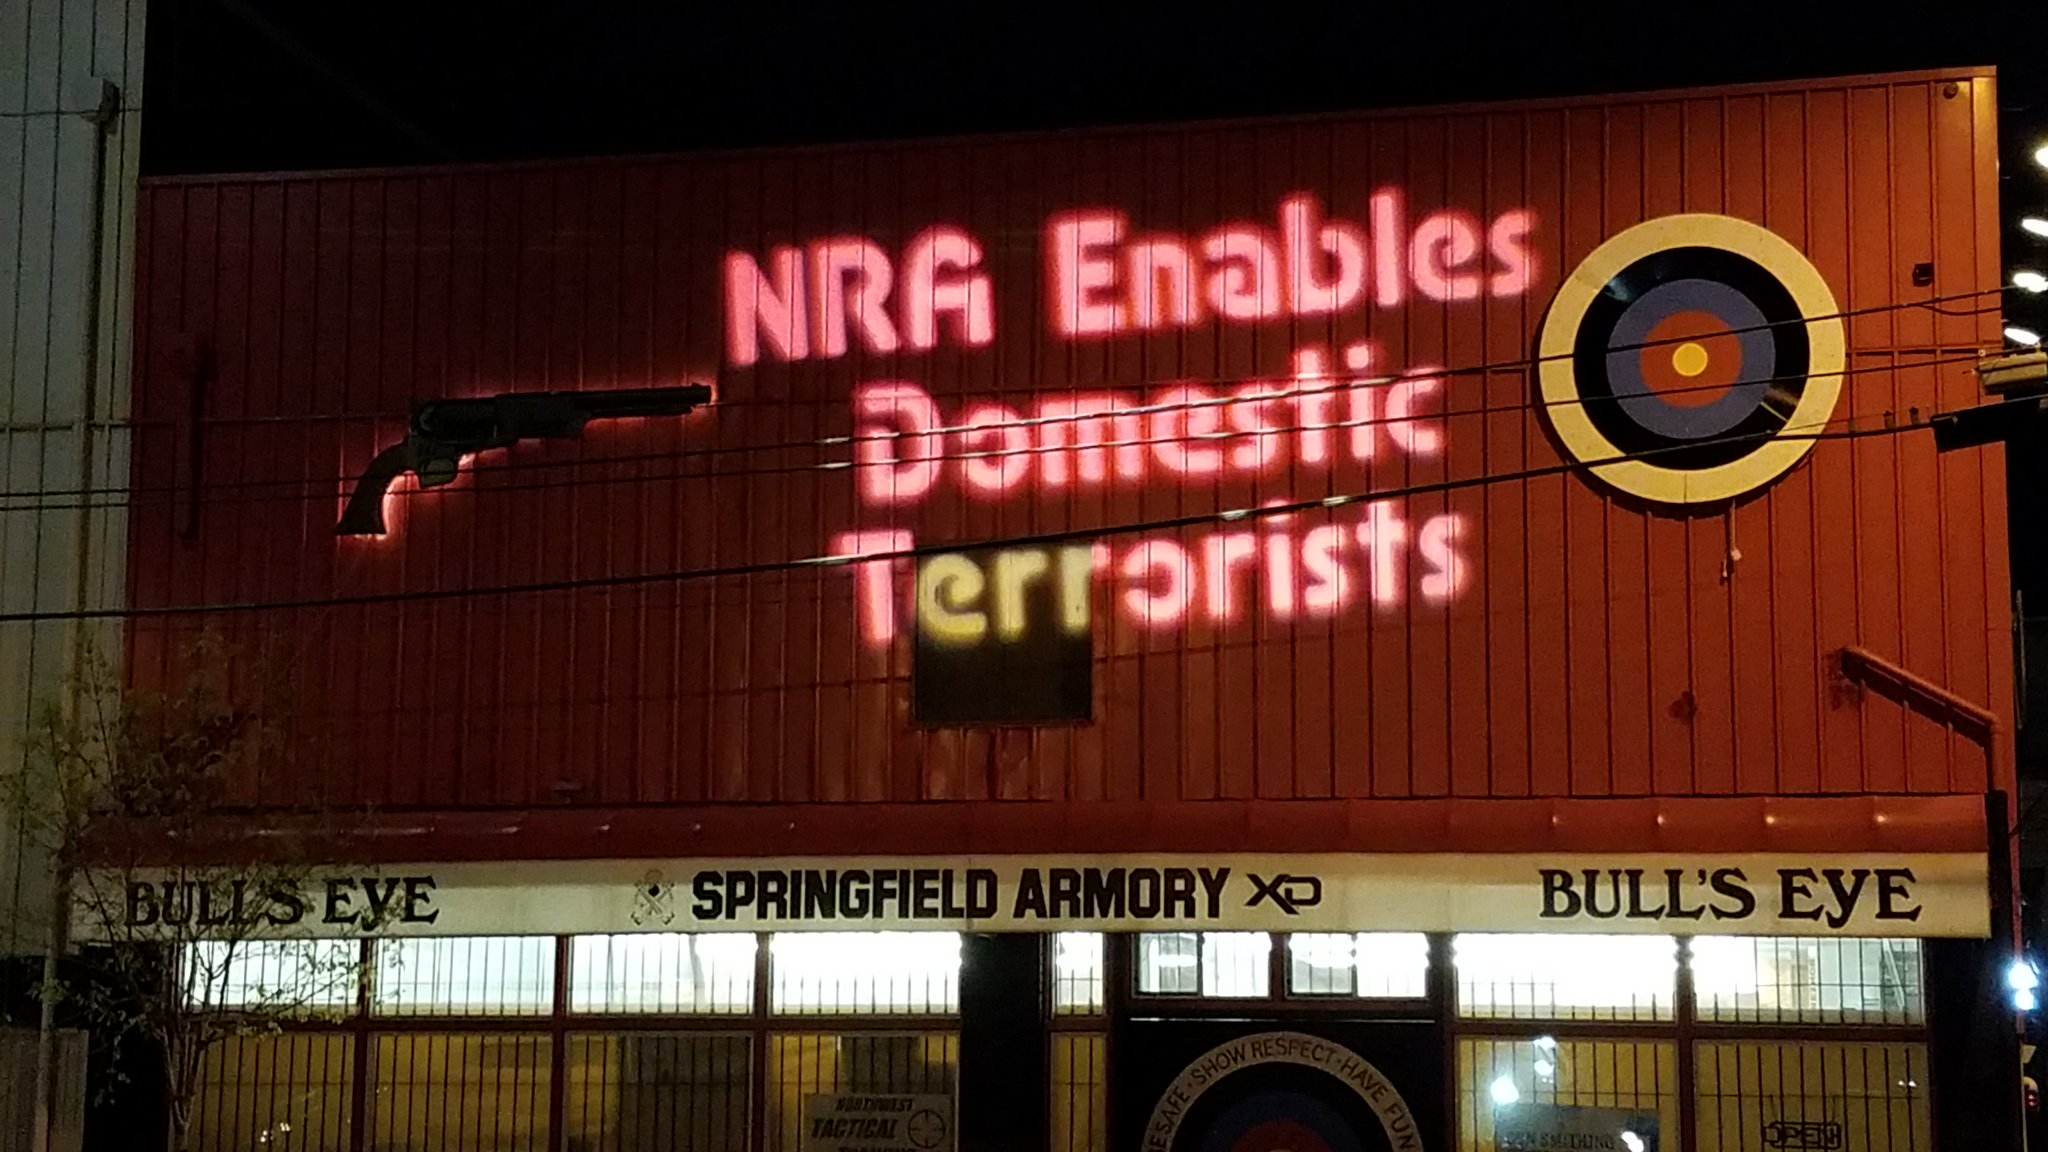 NRAenables-terrorists.jpg